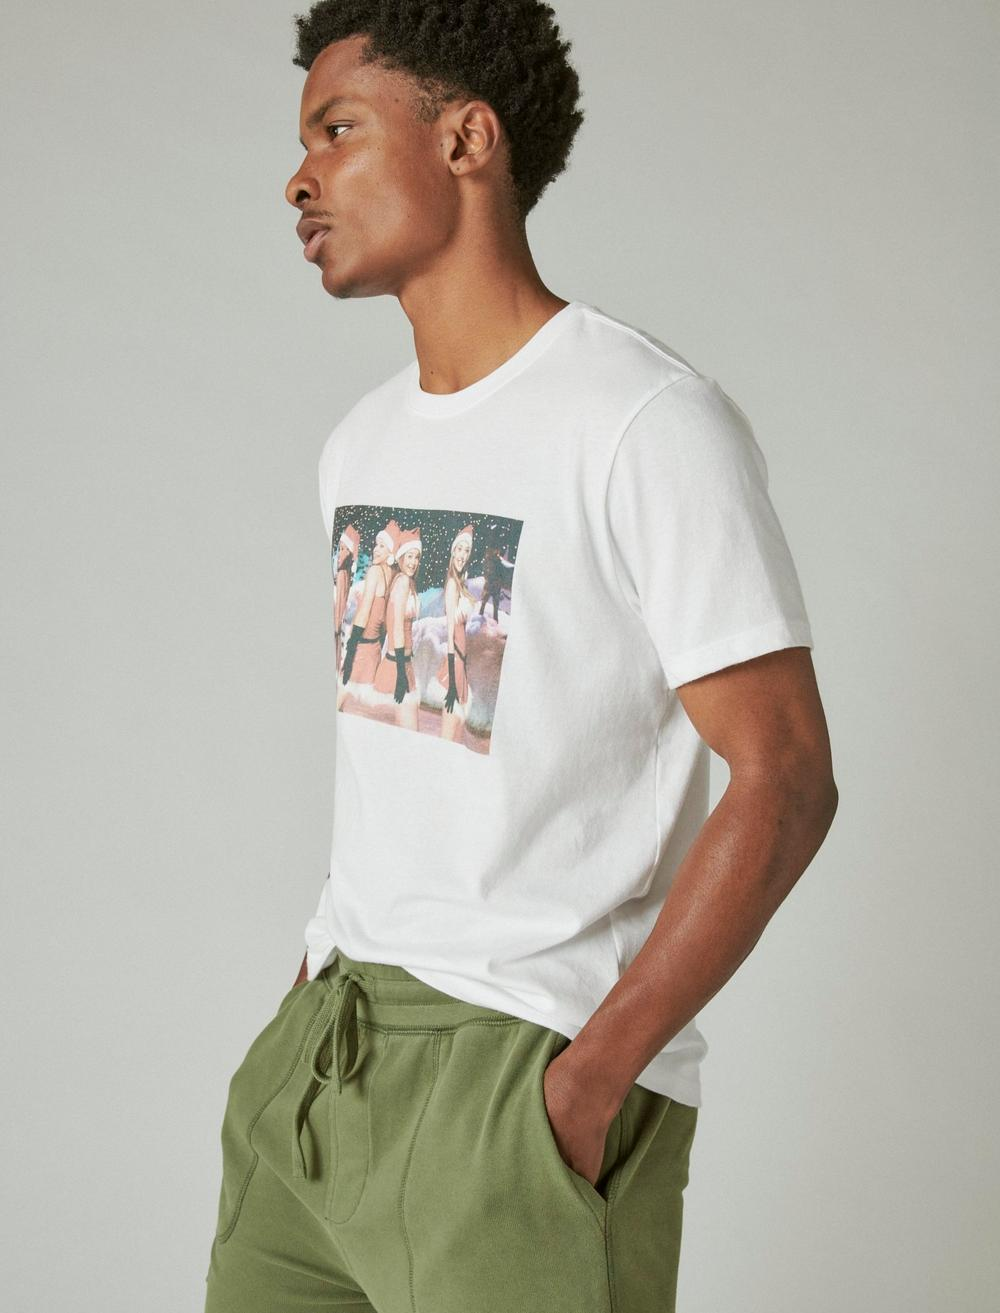 MEAN GIRLS GRAPHIC TEE, image 3